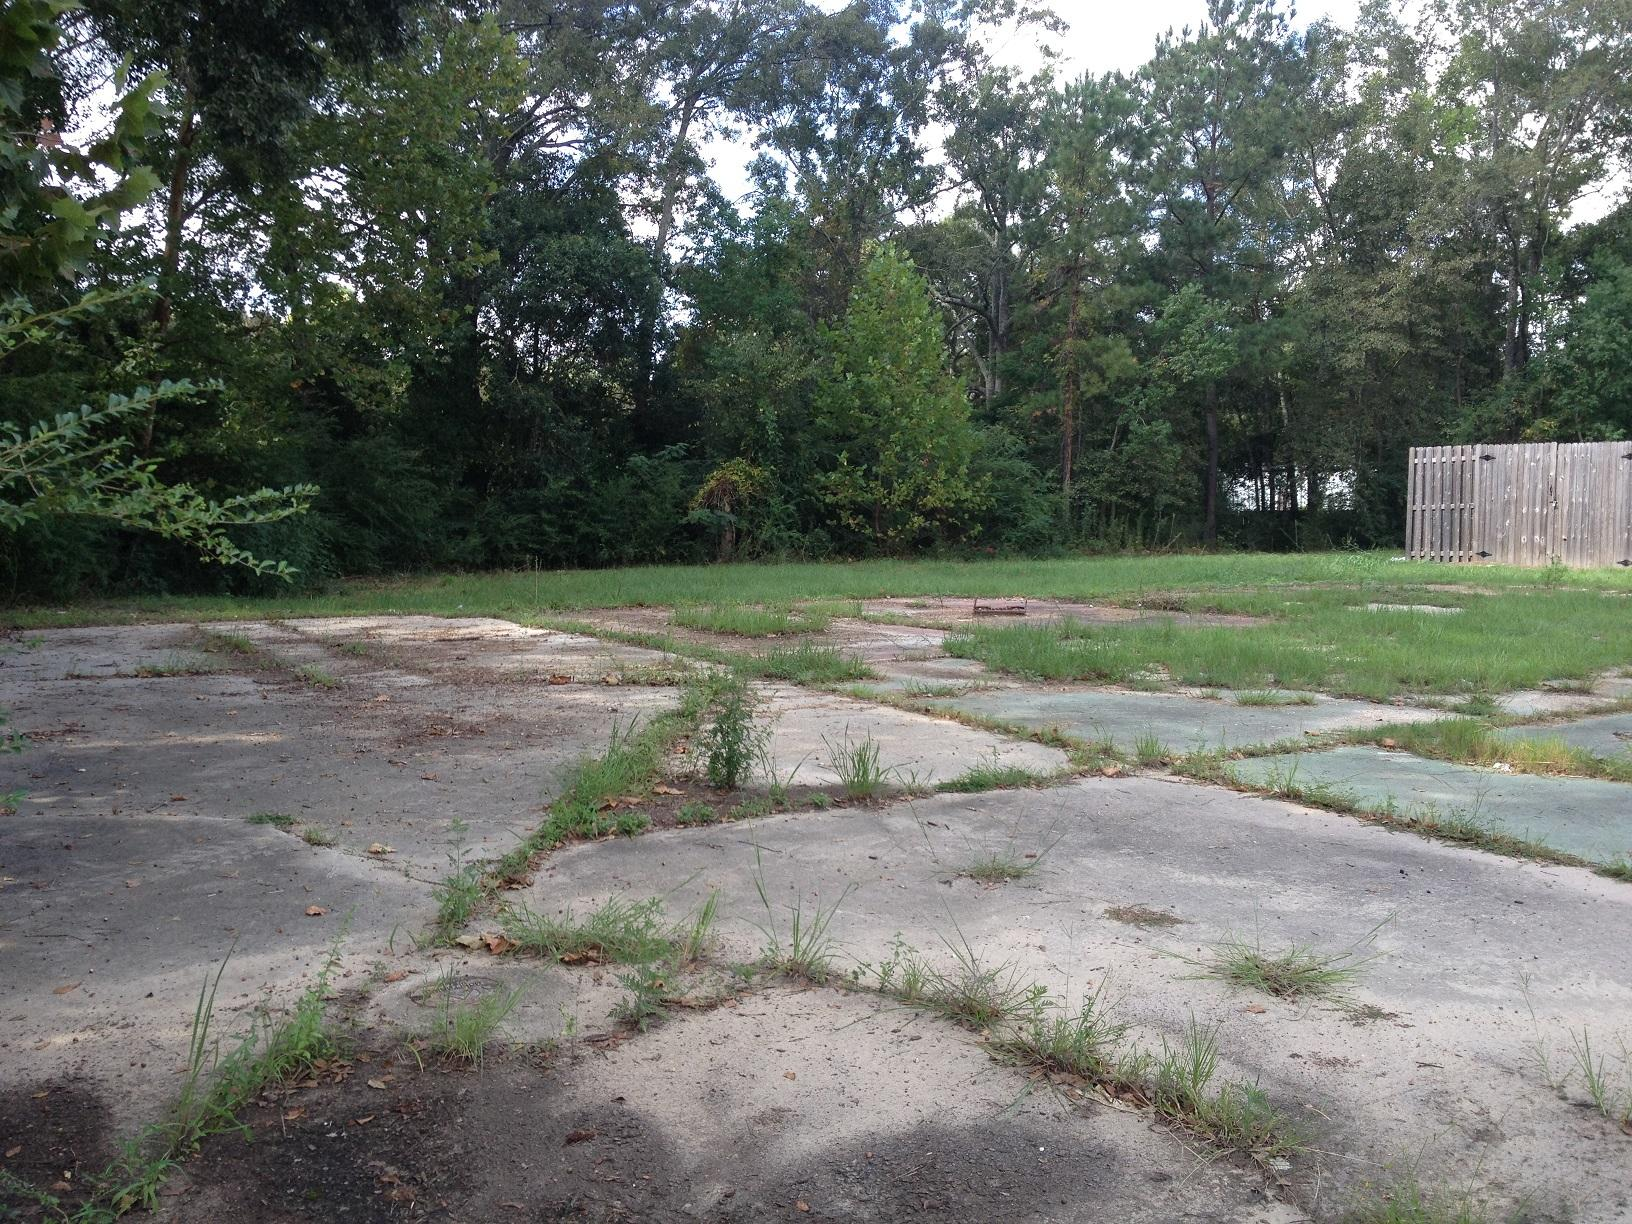 DeRidder land for sale,  811 W. 1ST ST, DeRidder LA - $49,950